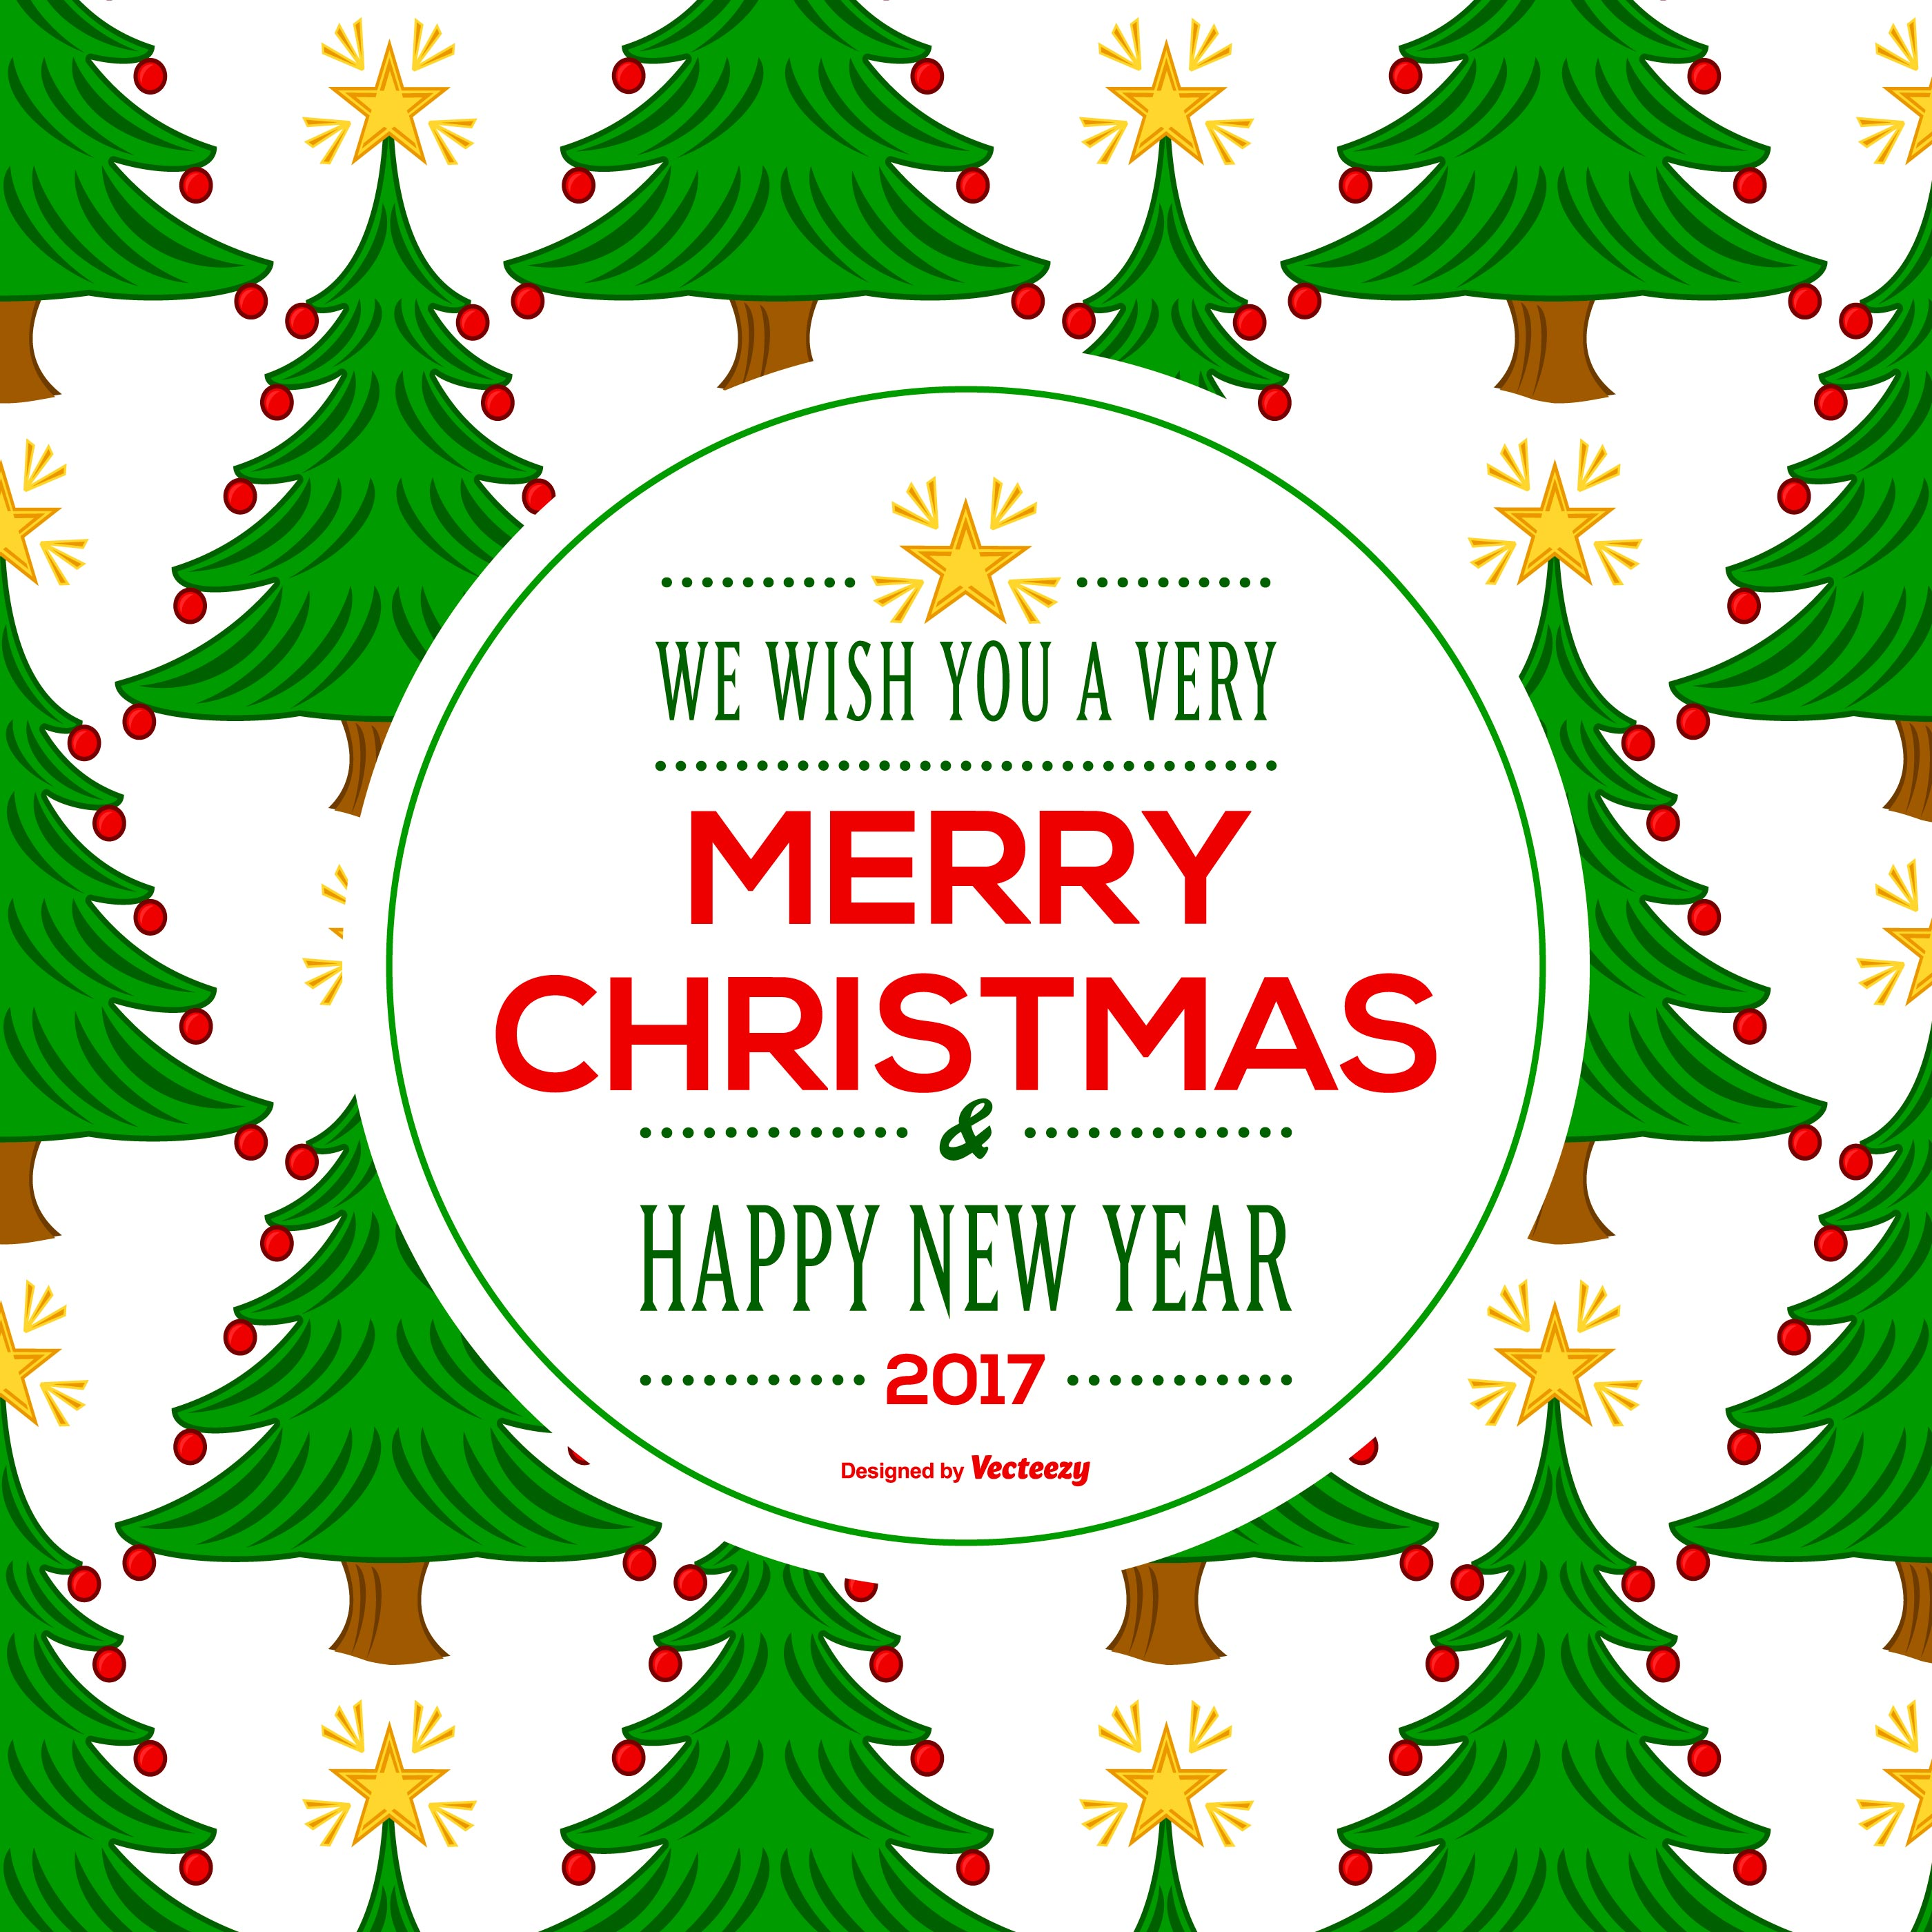 beautiful merry christmas backgroundcard download free vector art stock graphics images